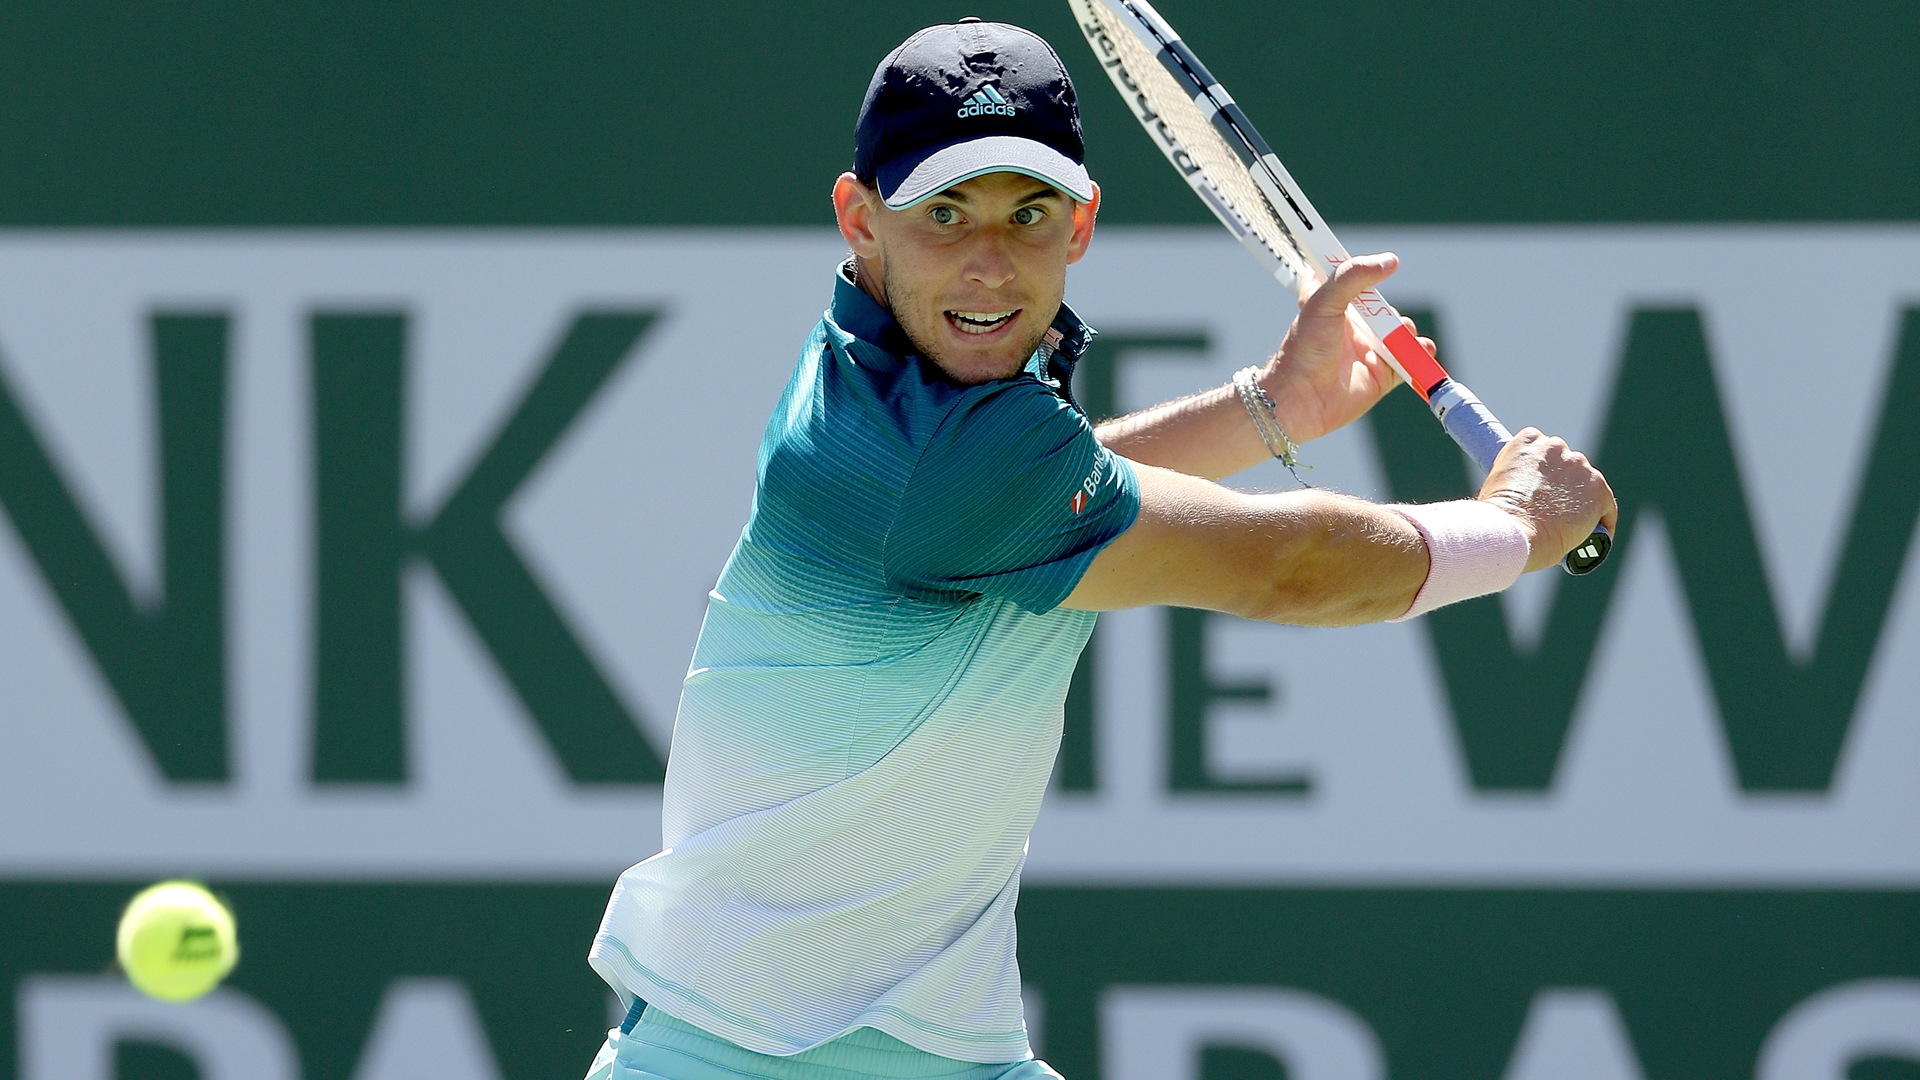 Indian Wells champion Dominic Thiem crashes out of Miami Open